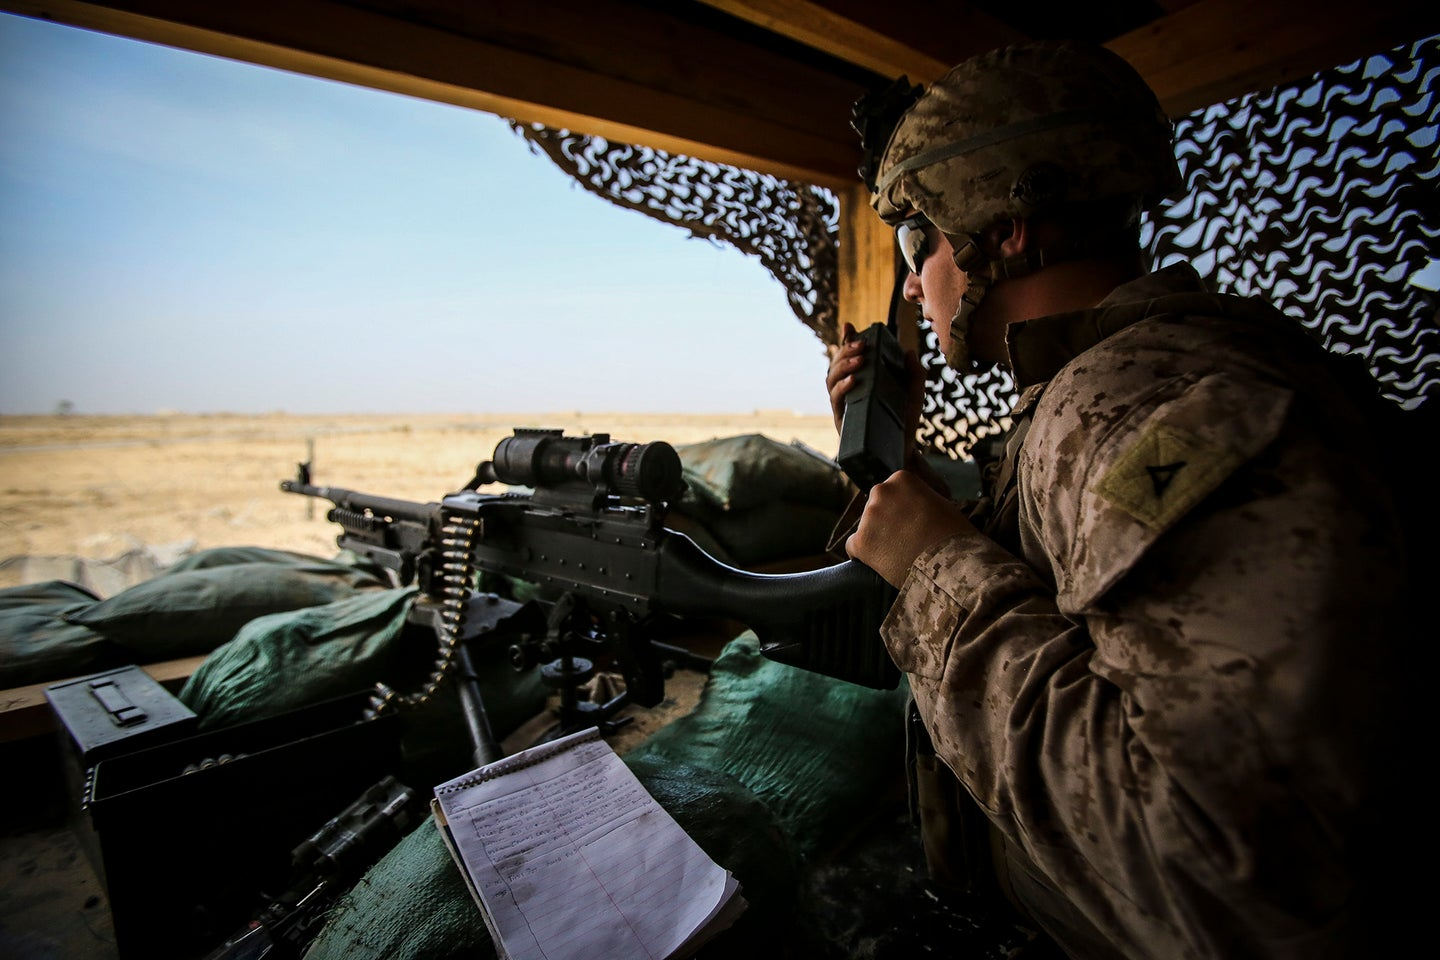 U.S. Marines maintaining security of coalition resources in Iraq